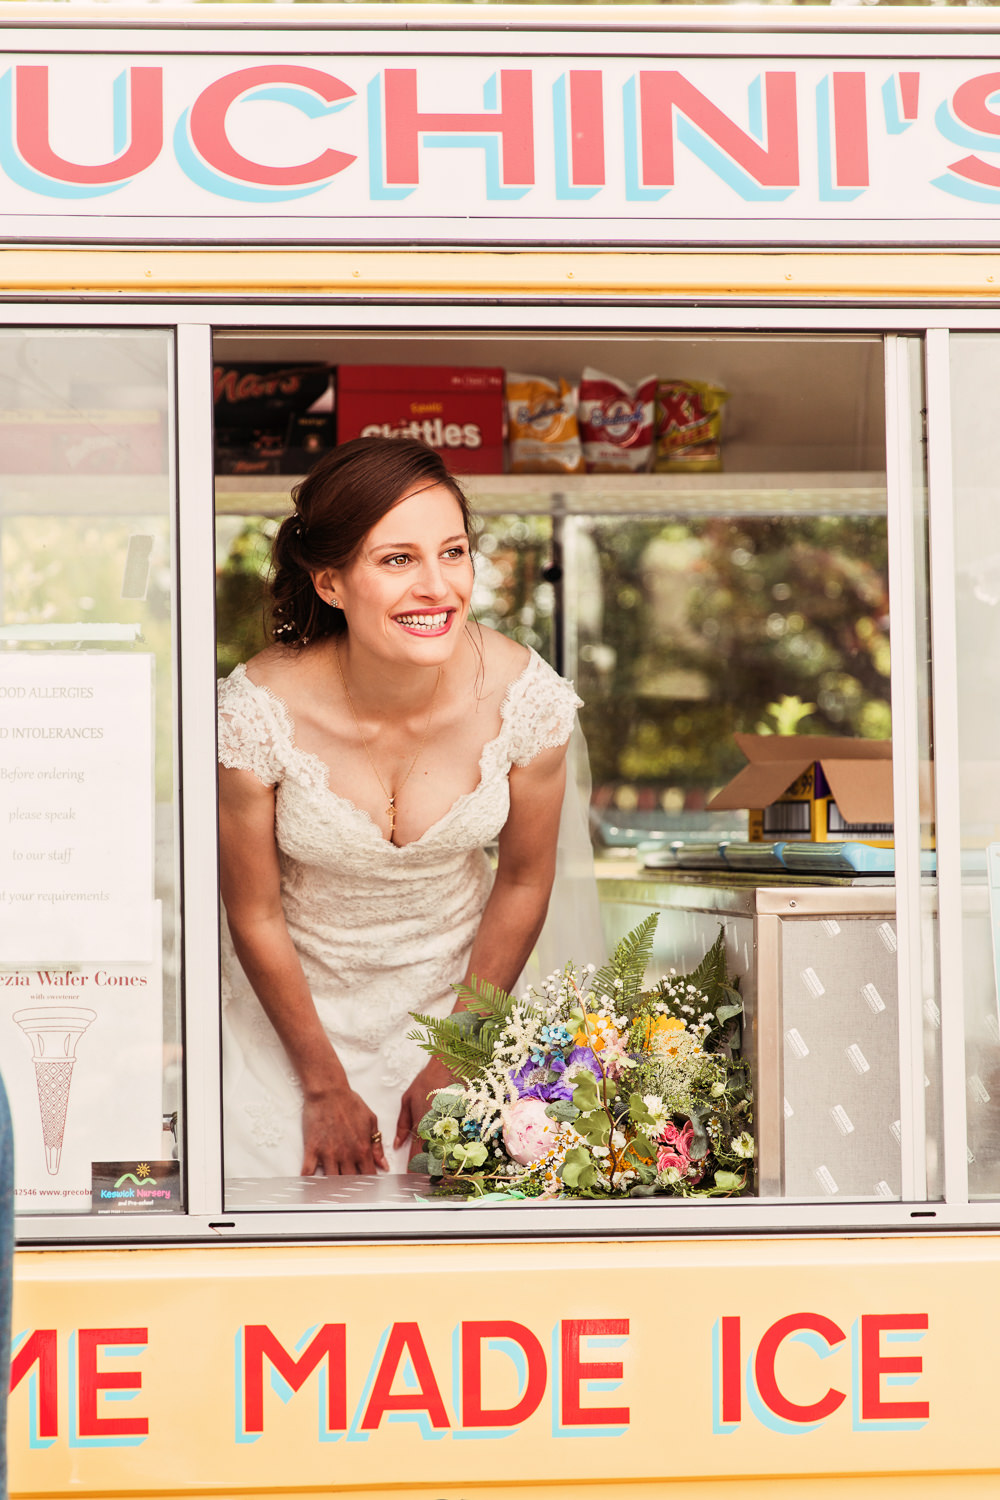 Bride Bridal Bespoke Dress Cape Sweetheart Neckline A Line Lace Ice Cream Van Festival Wedding Mismatched Country Camilla Lucinda Photography